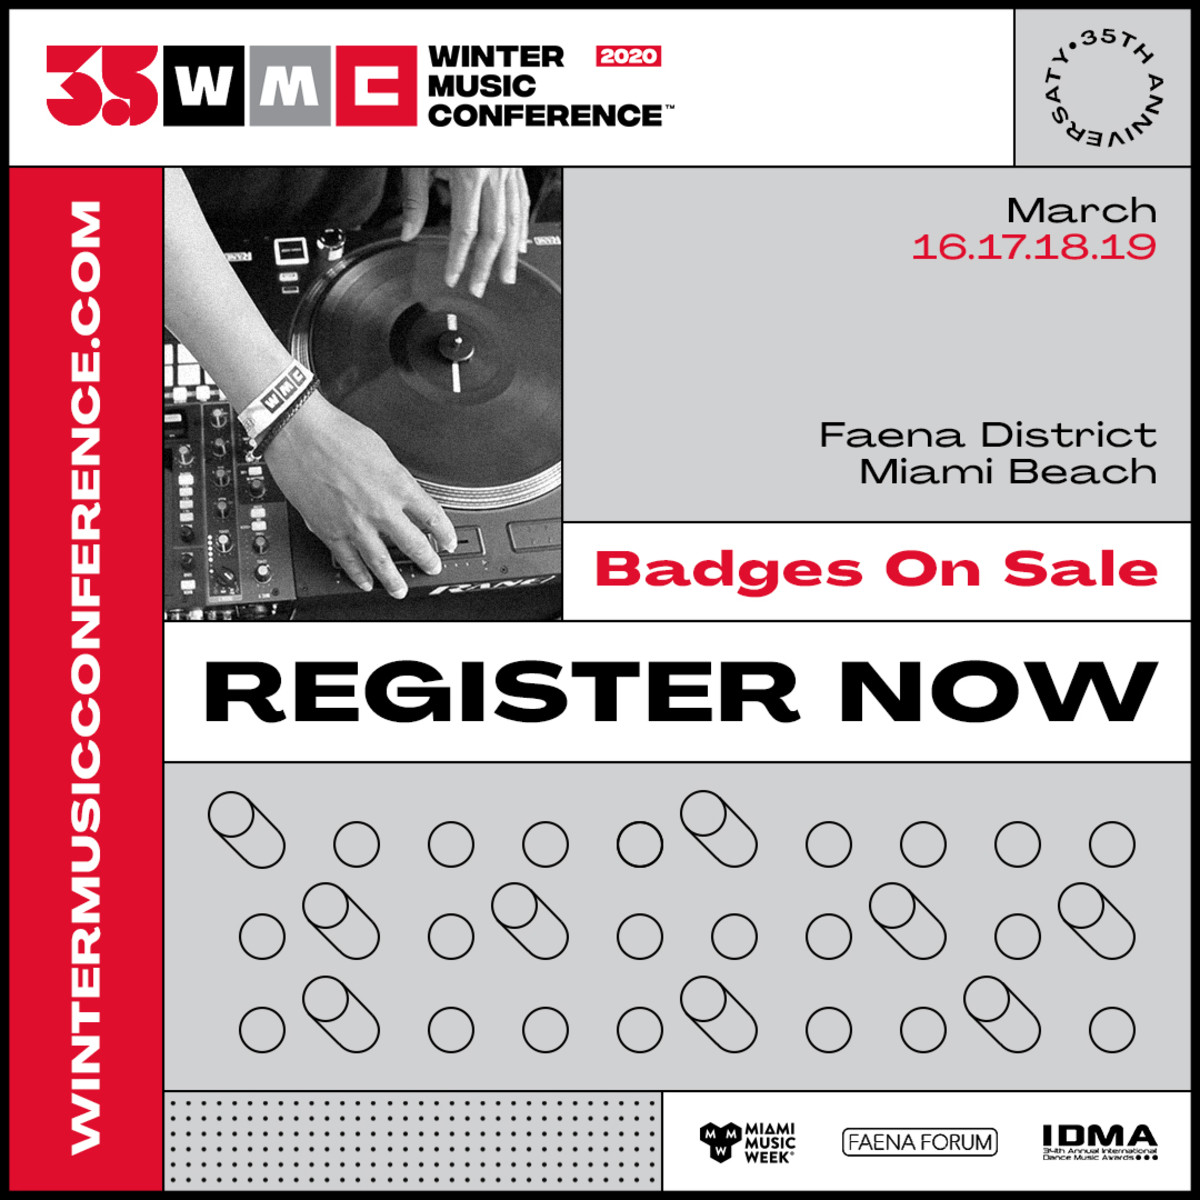 WMC - Register Now (Badges On Sale)